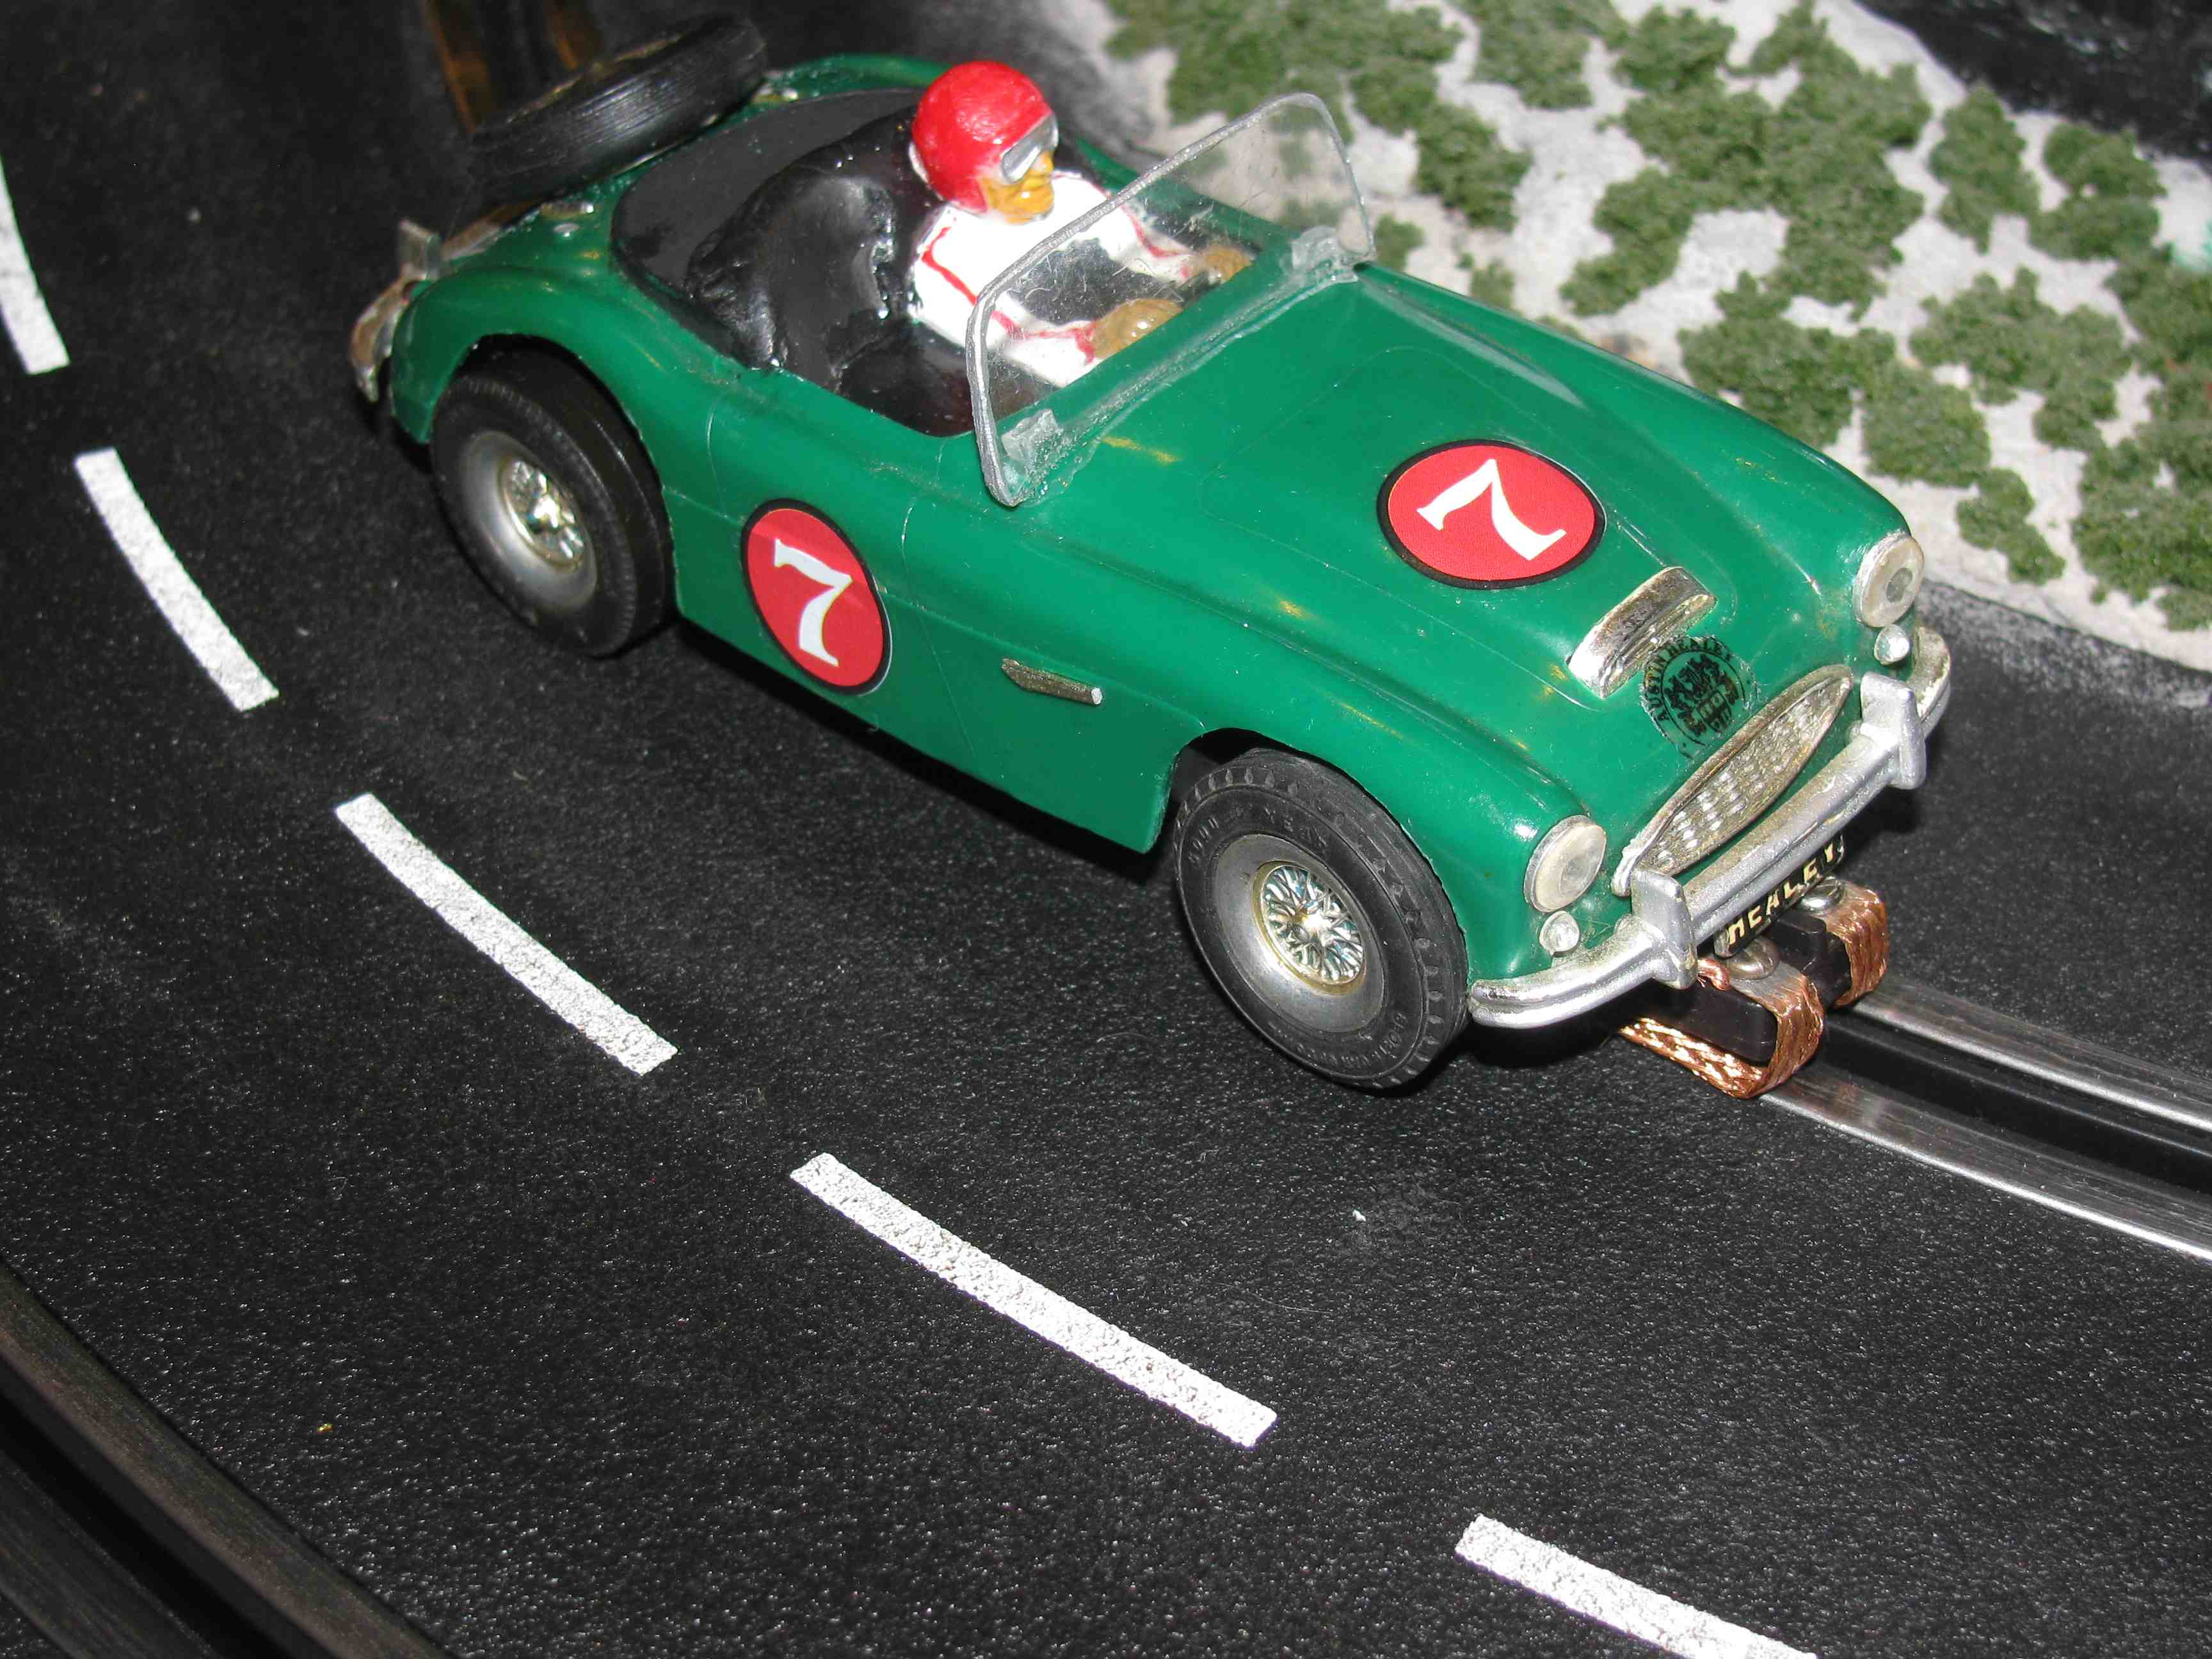 * SOLD * Vintage 1964 Austin Healey 3000 MkIII 2 litre Convertible Slot Car 1/32 Scale